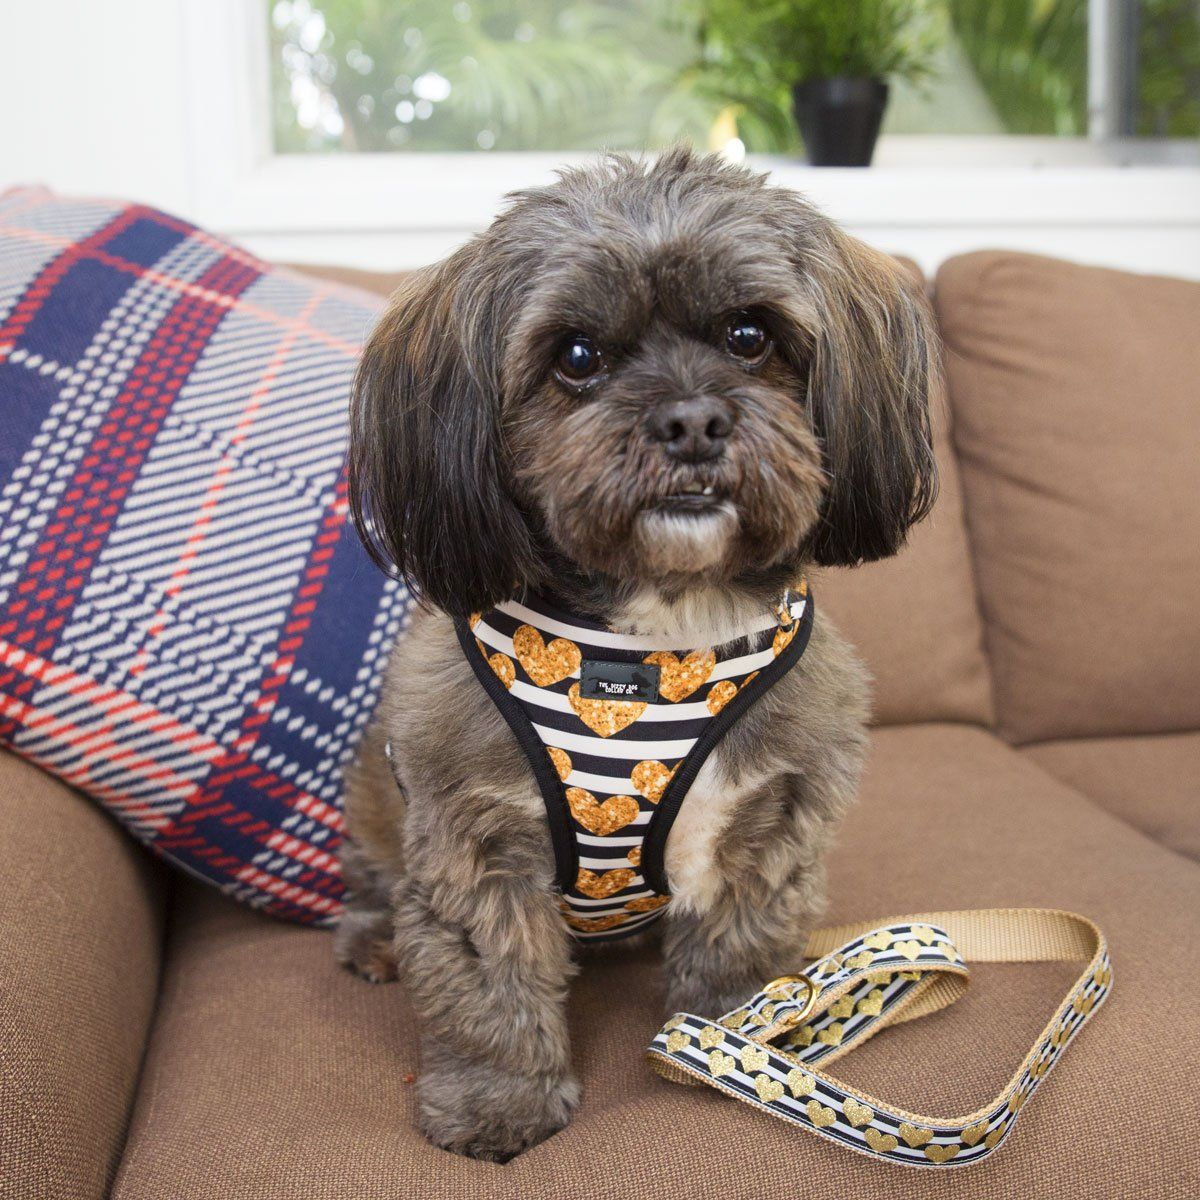 shih tzu wearing cute dog harness